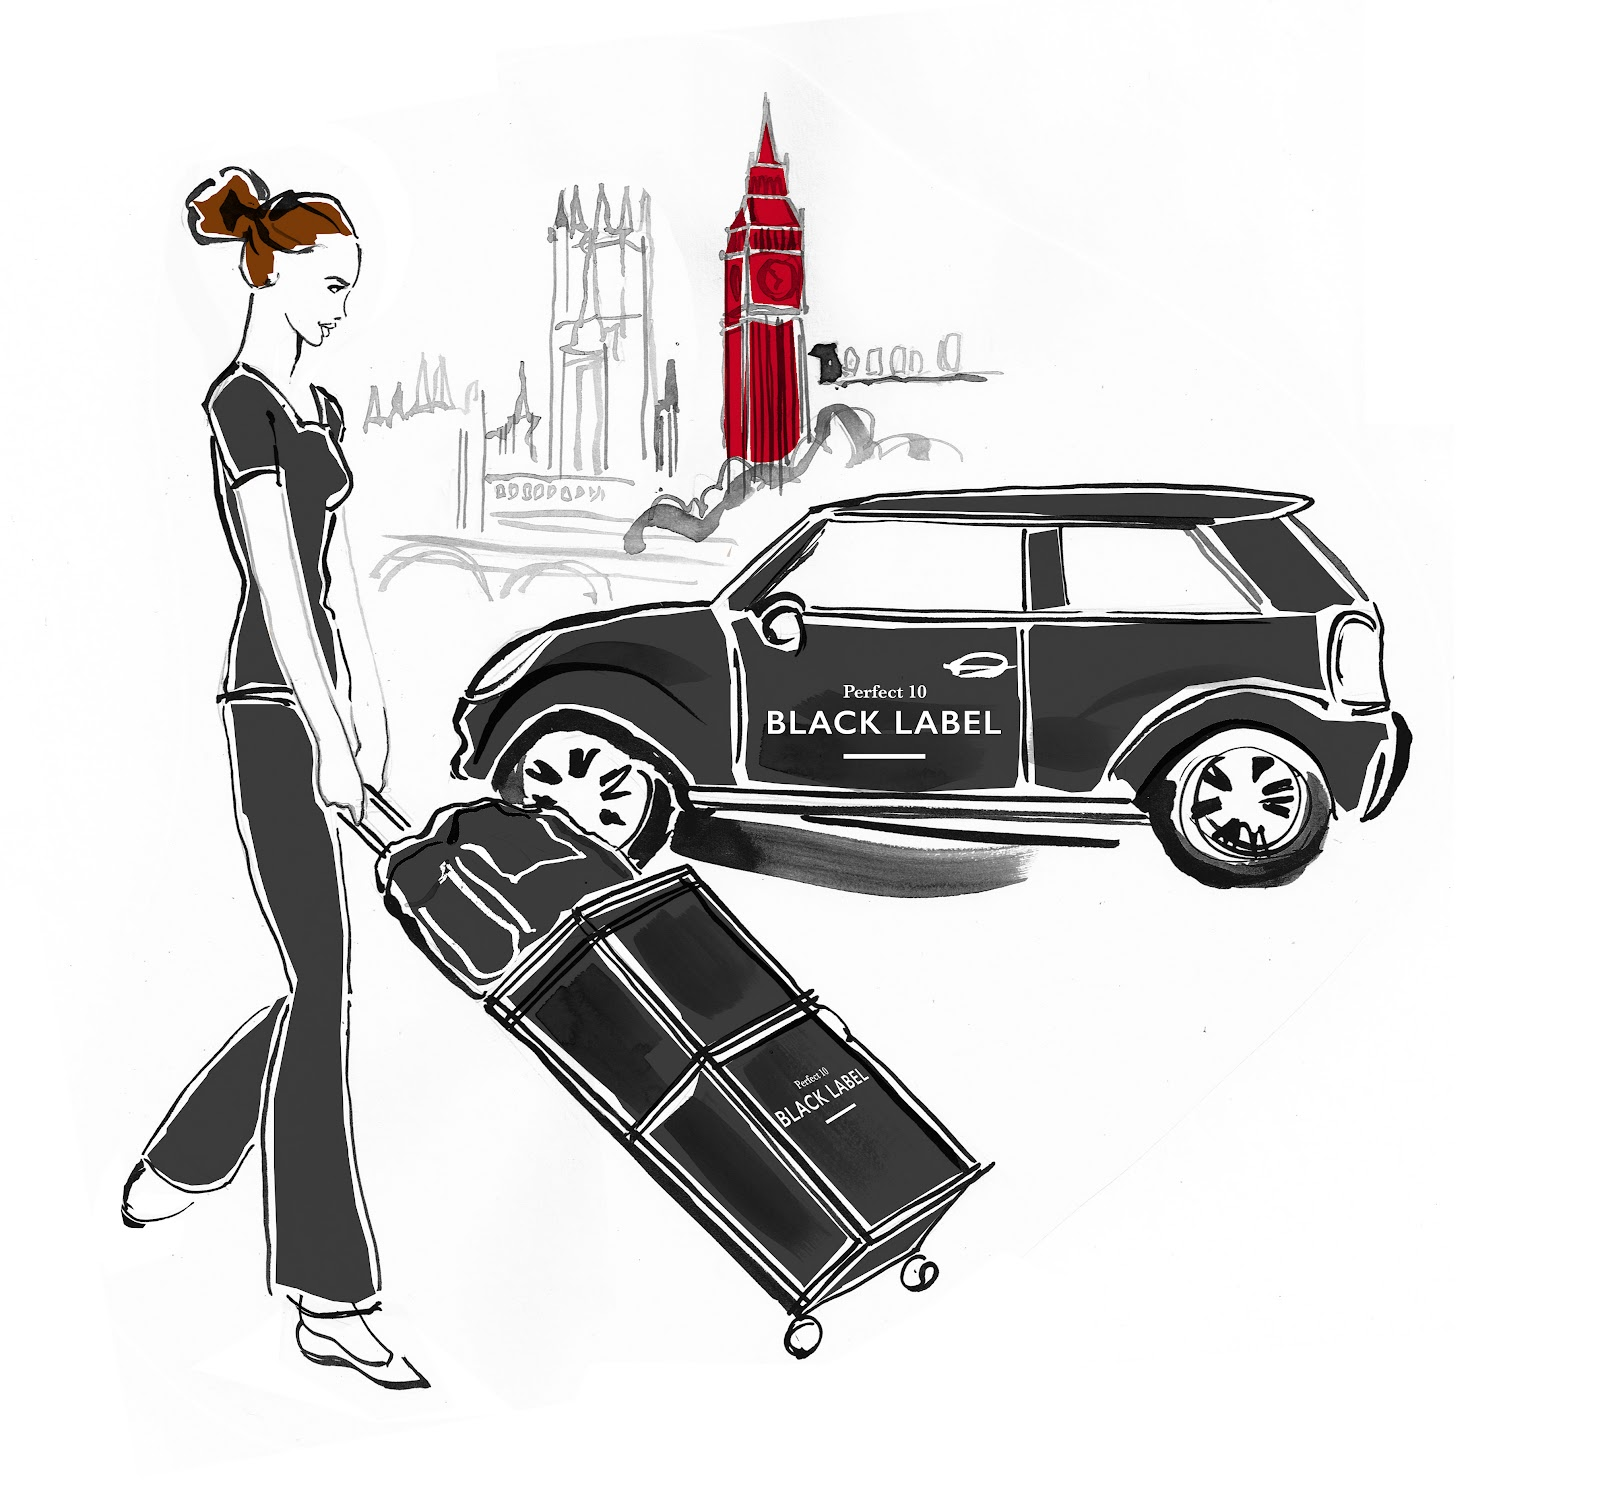 At home beauty service - Perfect 10 Black Label girl mini